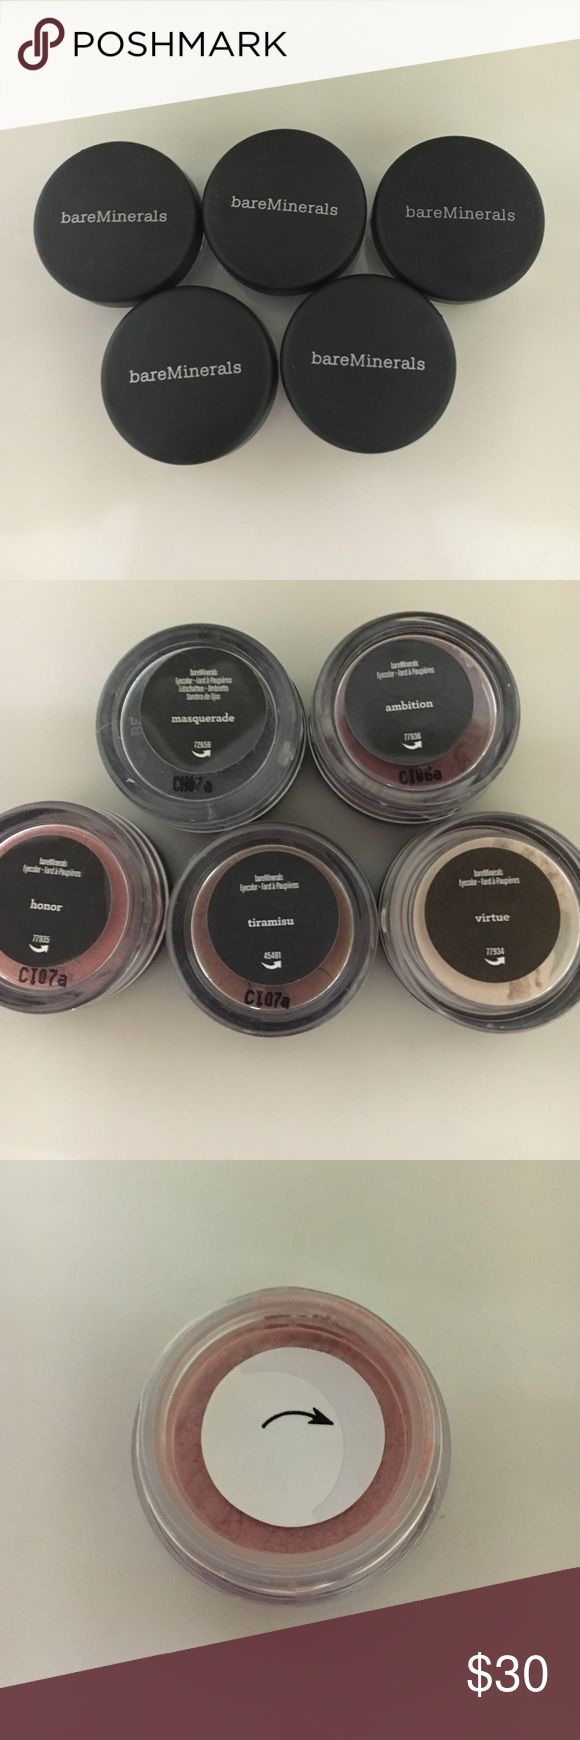 Bare Minerals set of 5 eyeshadows 5 brand new never opened Bare Minerals shades. Makeup Eyeshadow